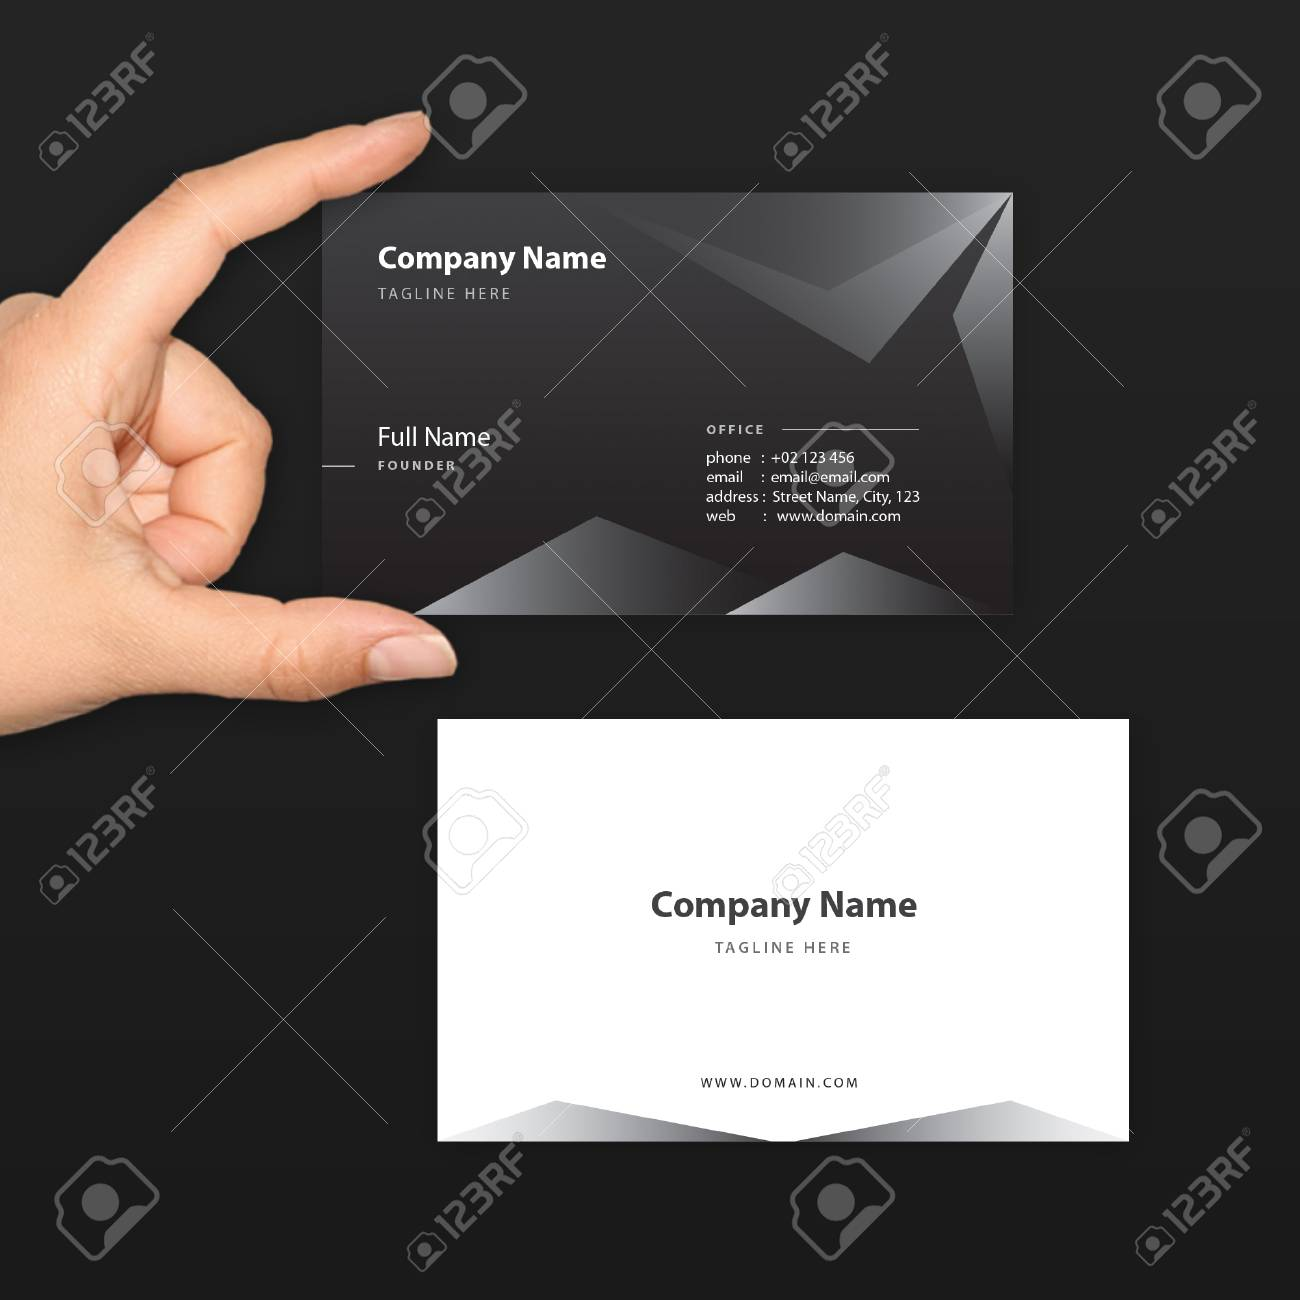 Black business card vector template fit for high end and exclusive black business card vector template fit for high end and exclusive company startup and reheart Choice Image